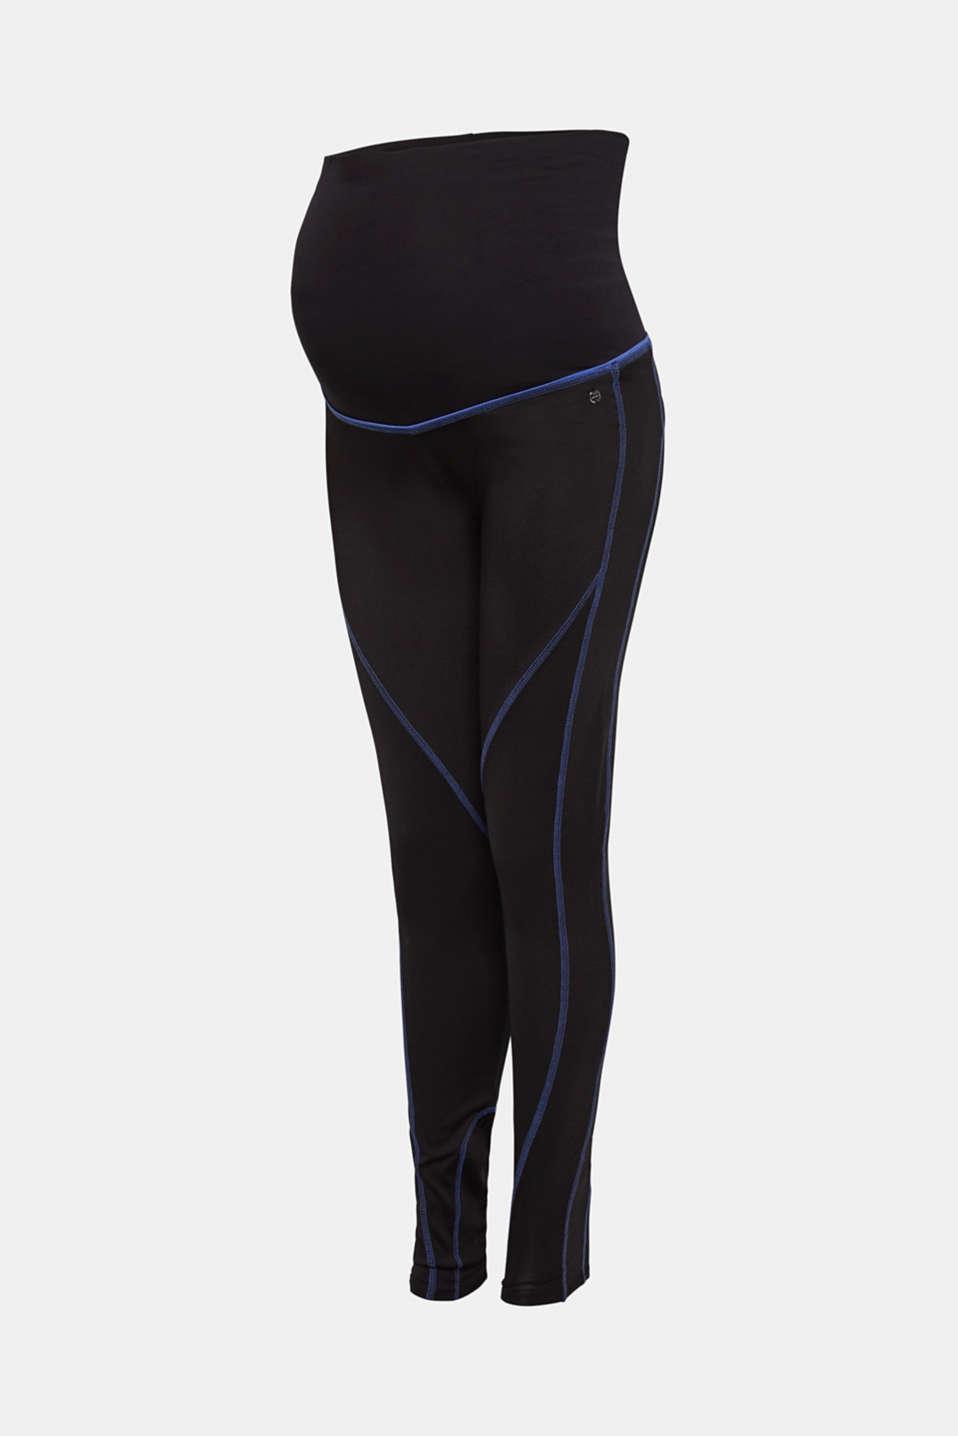 Leggings with contrasting stitching, over-bump waistband, LCBLACK, detail image number 6